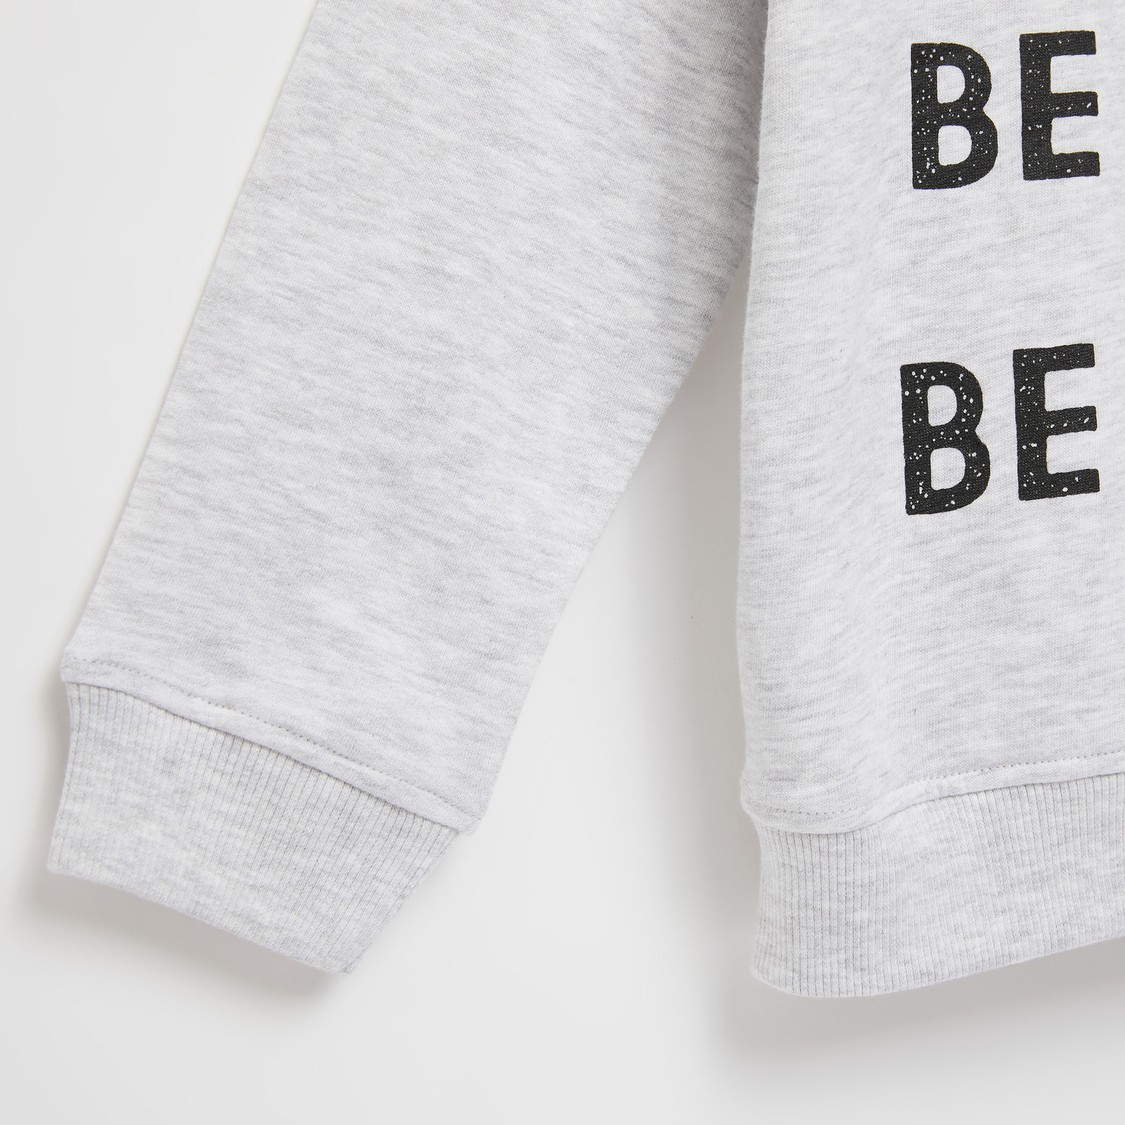 Typographic Print Sweatshirt with Round Neck and Long Sleeves